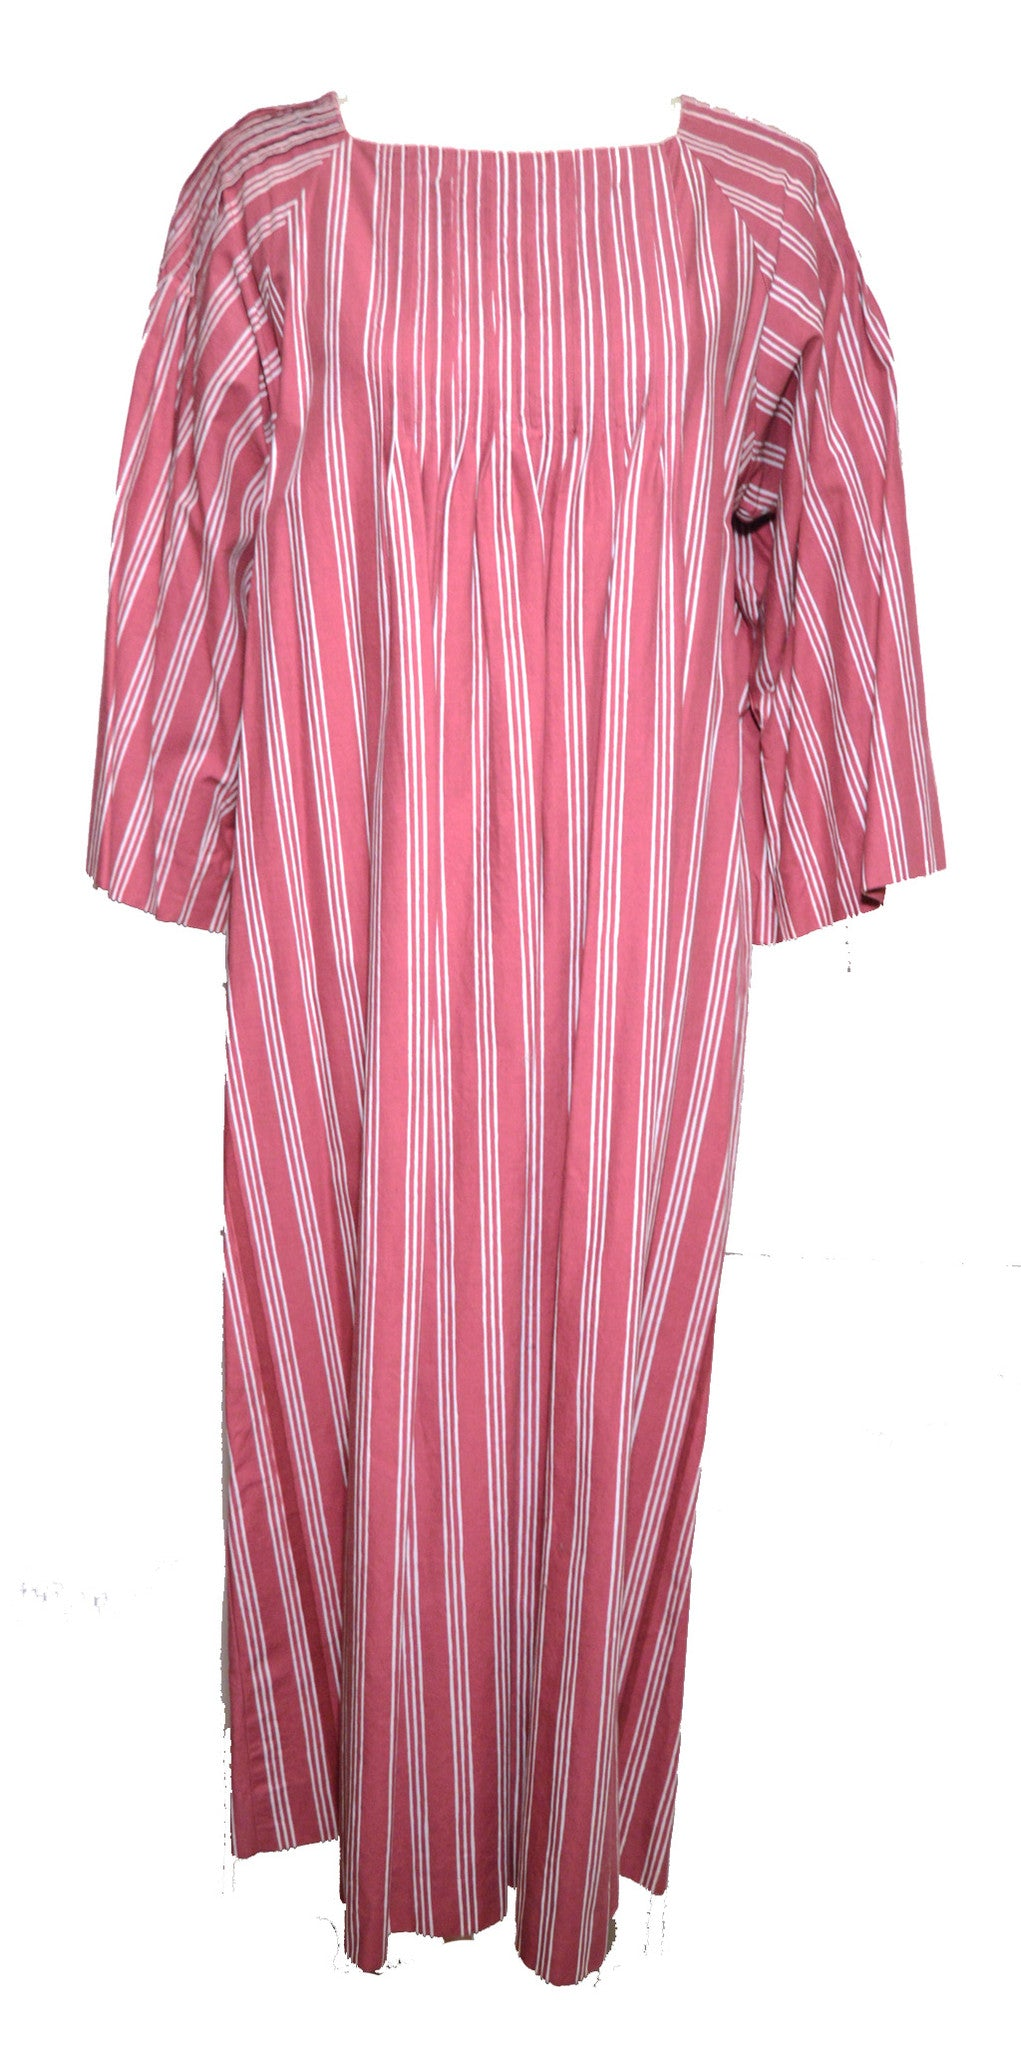 Marimekko 1970s Rose Striped Tunic Dress Dress Lord & Taylor Philadelphia Vintage and Textiles - 1